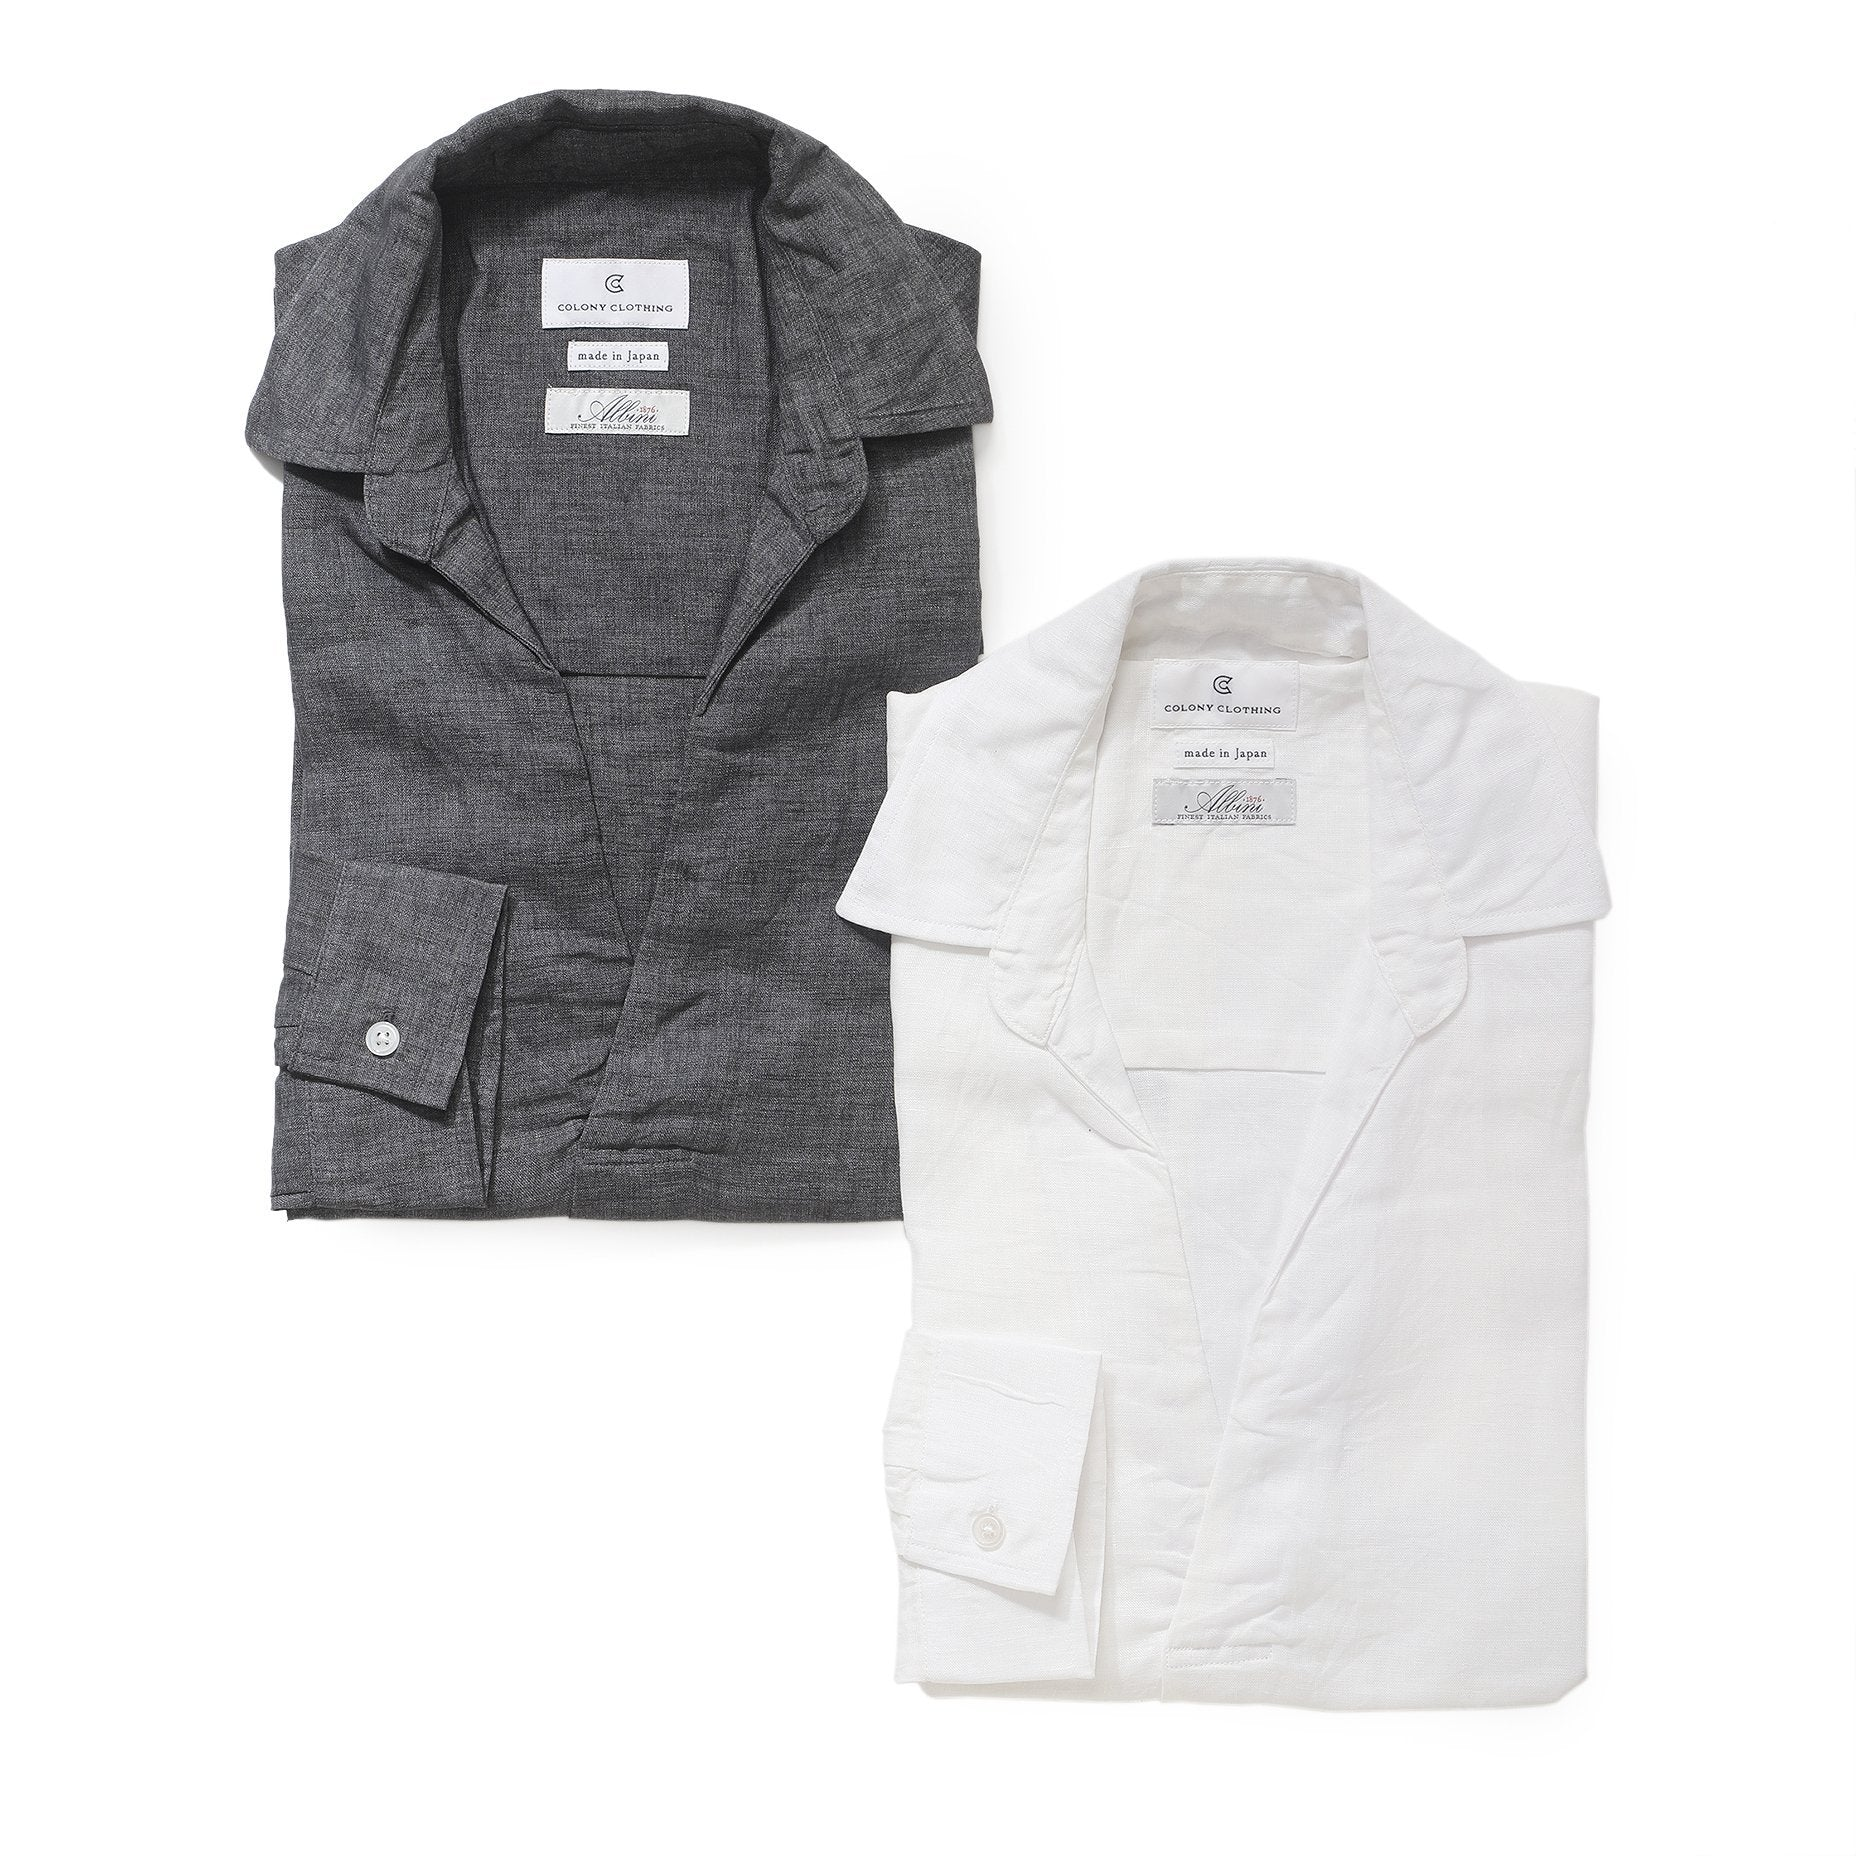 Colony Clothing Linen Resort Shirt